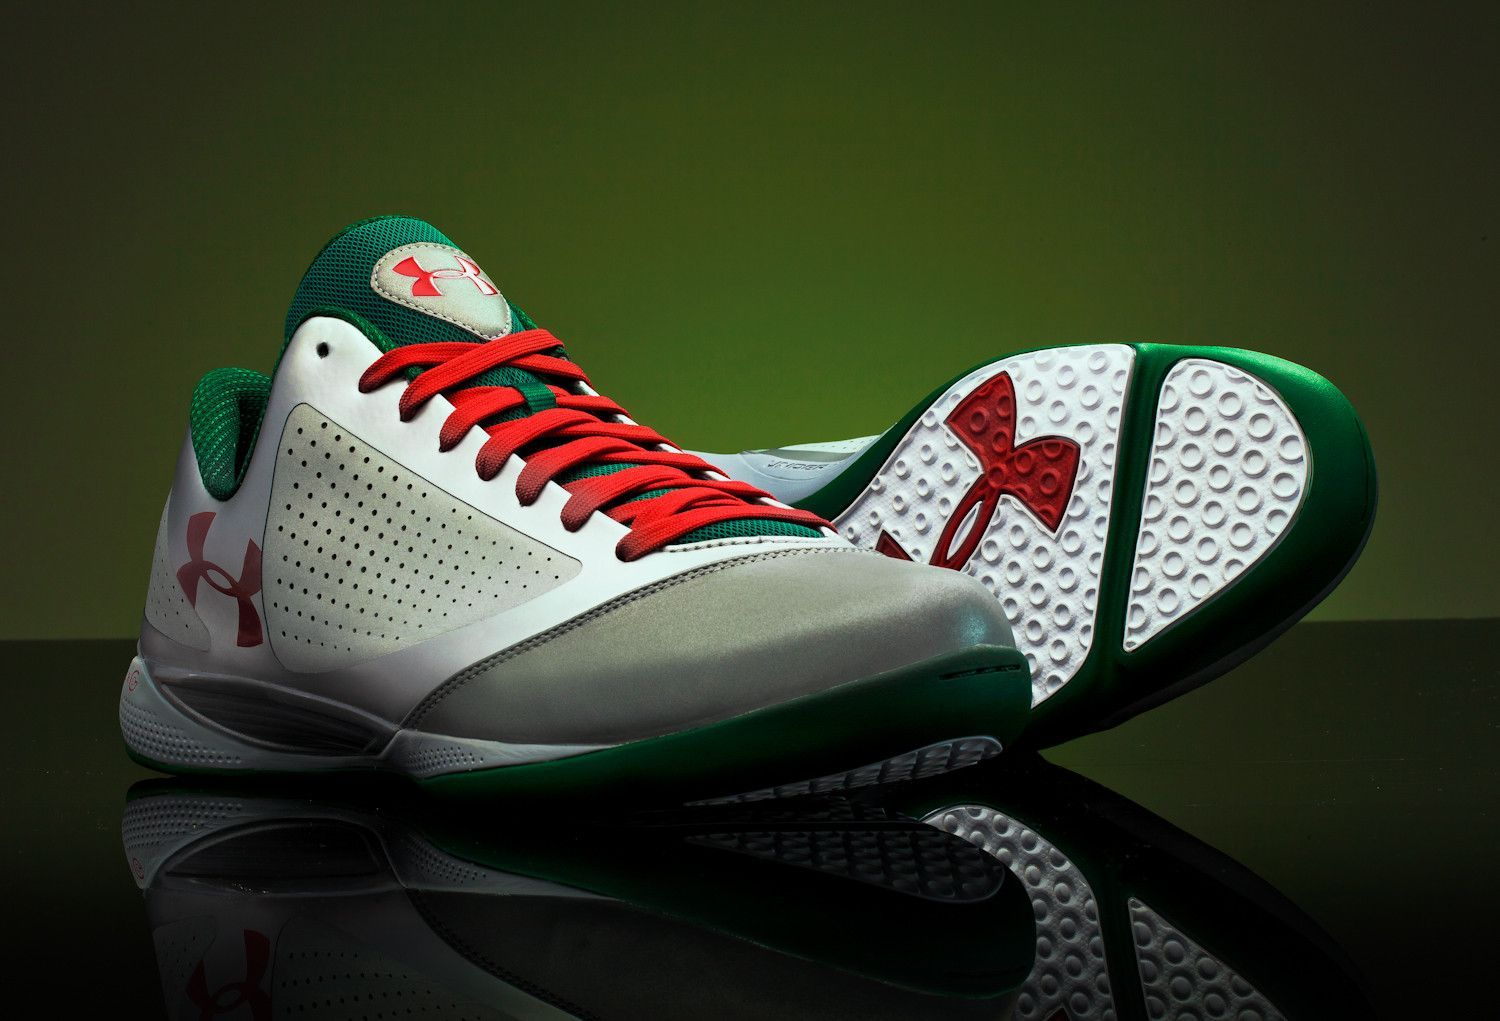 Under Armour Basketball Wallpaper